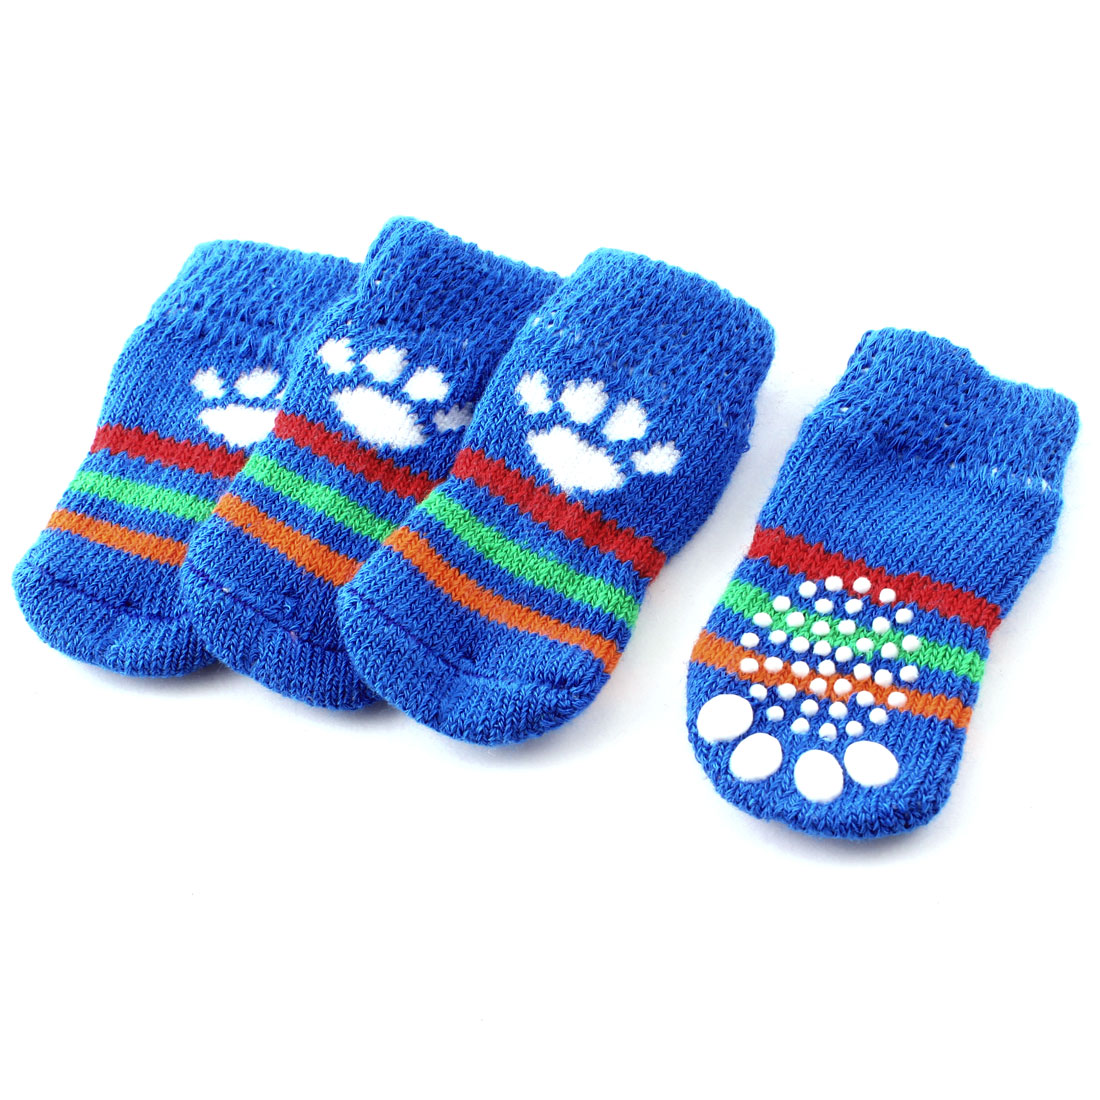 2 Pairs Blue White Knitting Nonskid Paw Pattern Elastic Pet Dog Doggie Socks